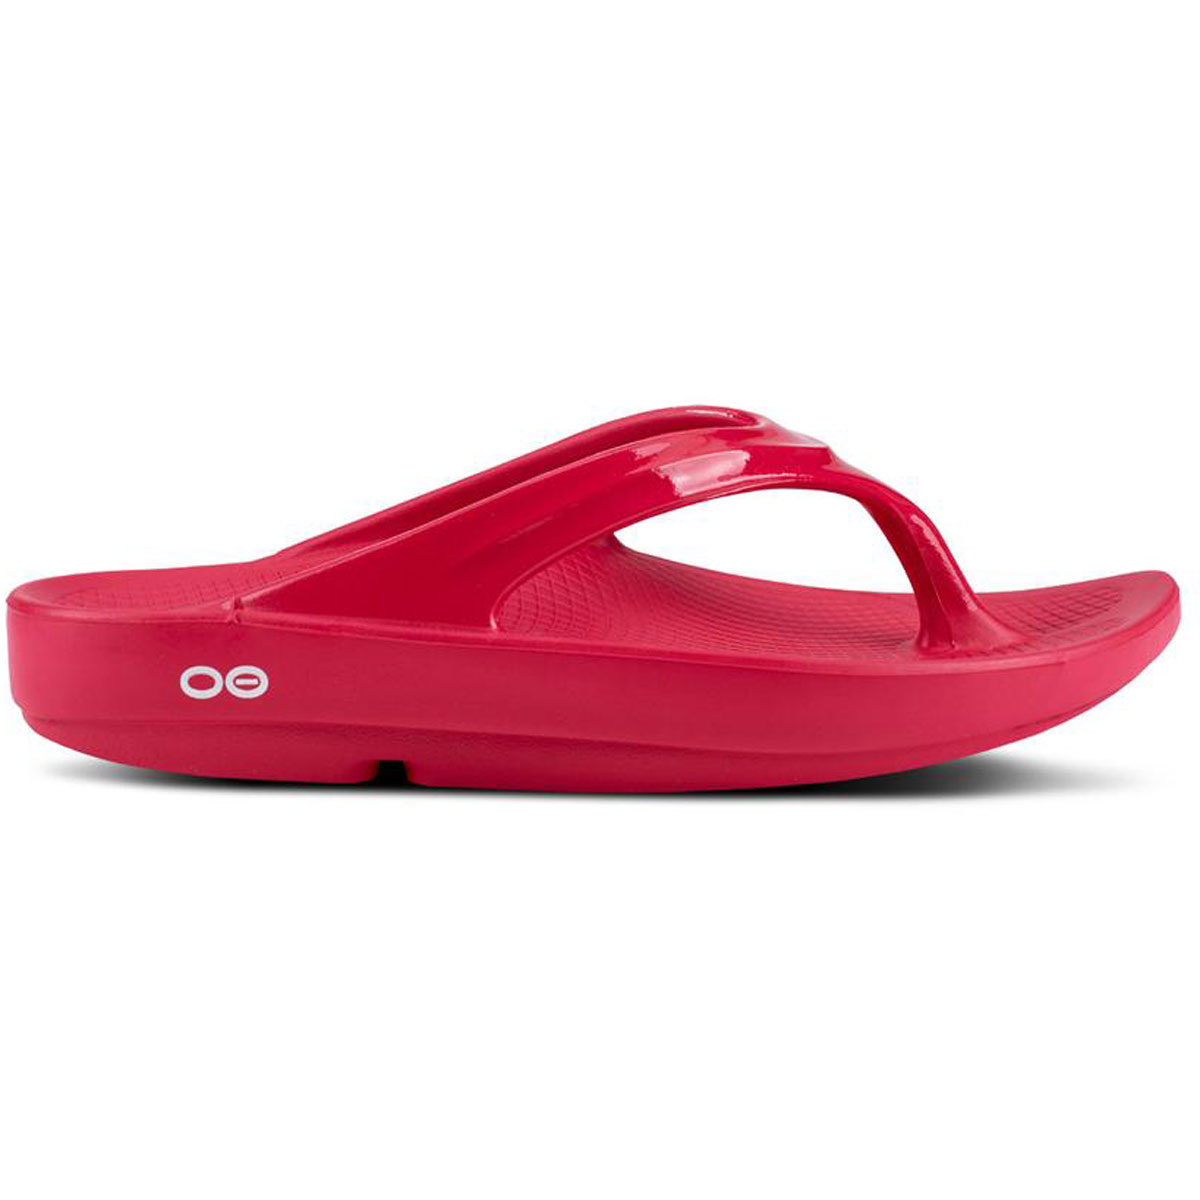 Women's Oofos OOlala Thong Recovery Sandal - Color: Raspberry - Size: 5 - Width: Regular, Raspberry, large, image 1